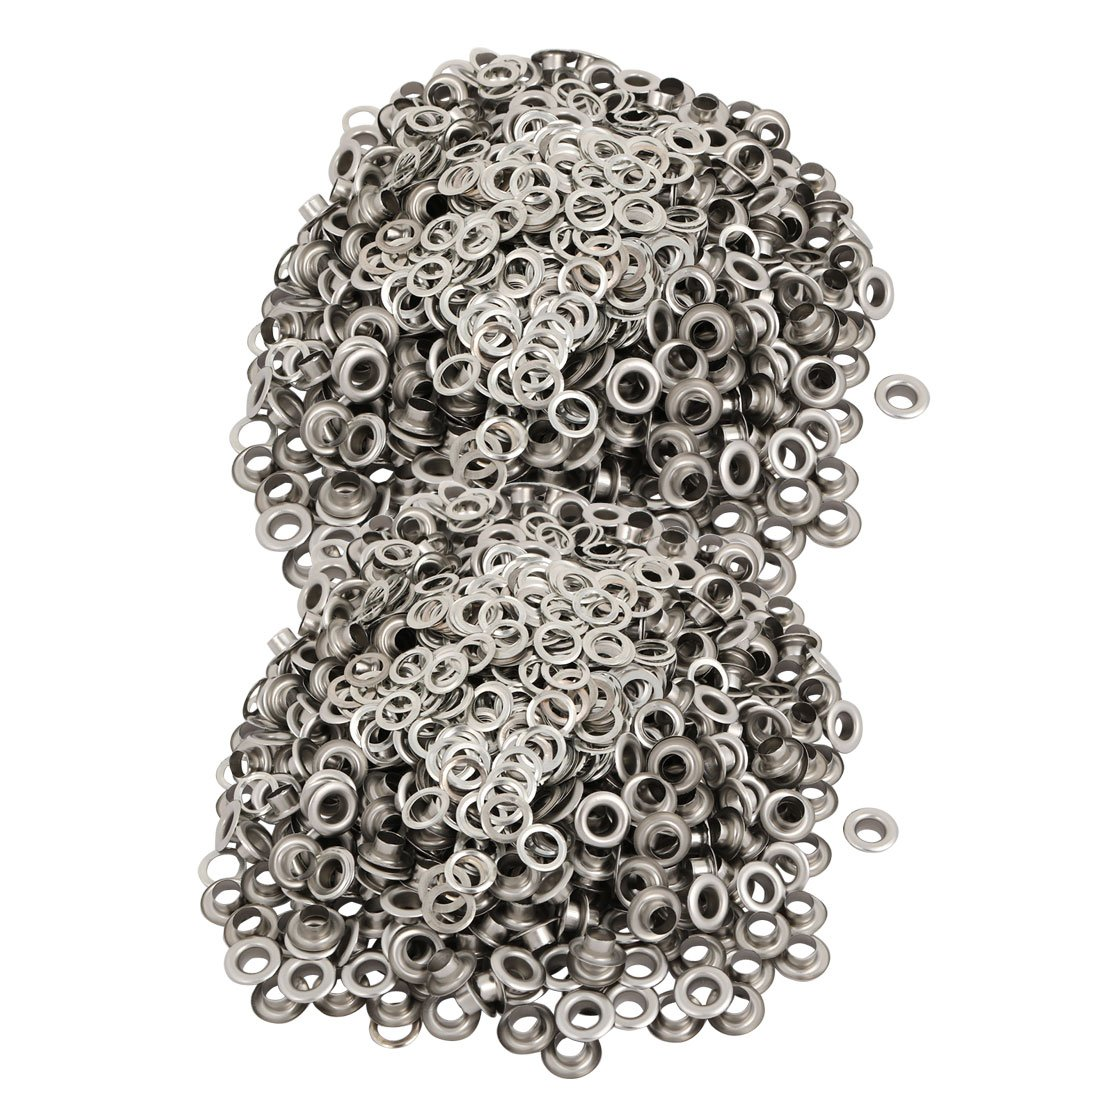 uxcell 1000pcs 6mm Inner Dia 201 Stainless Steel Eyelet Grommets w Washers for Clothes Leather